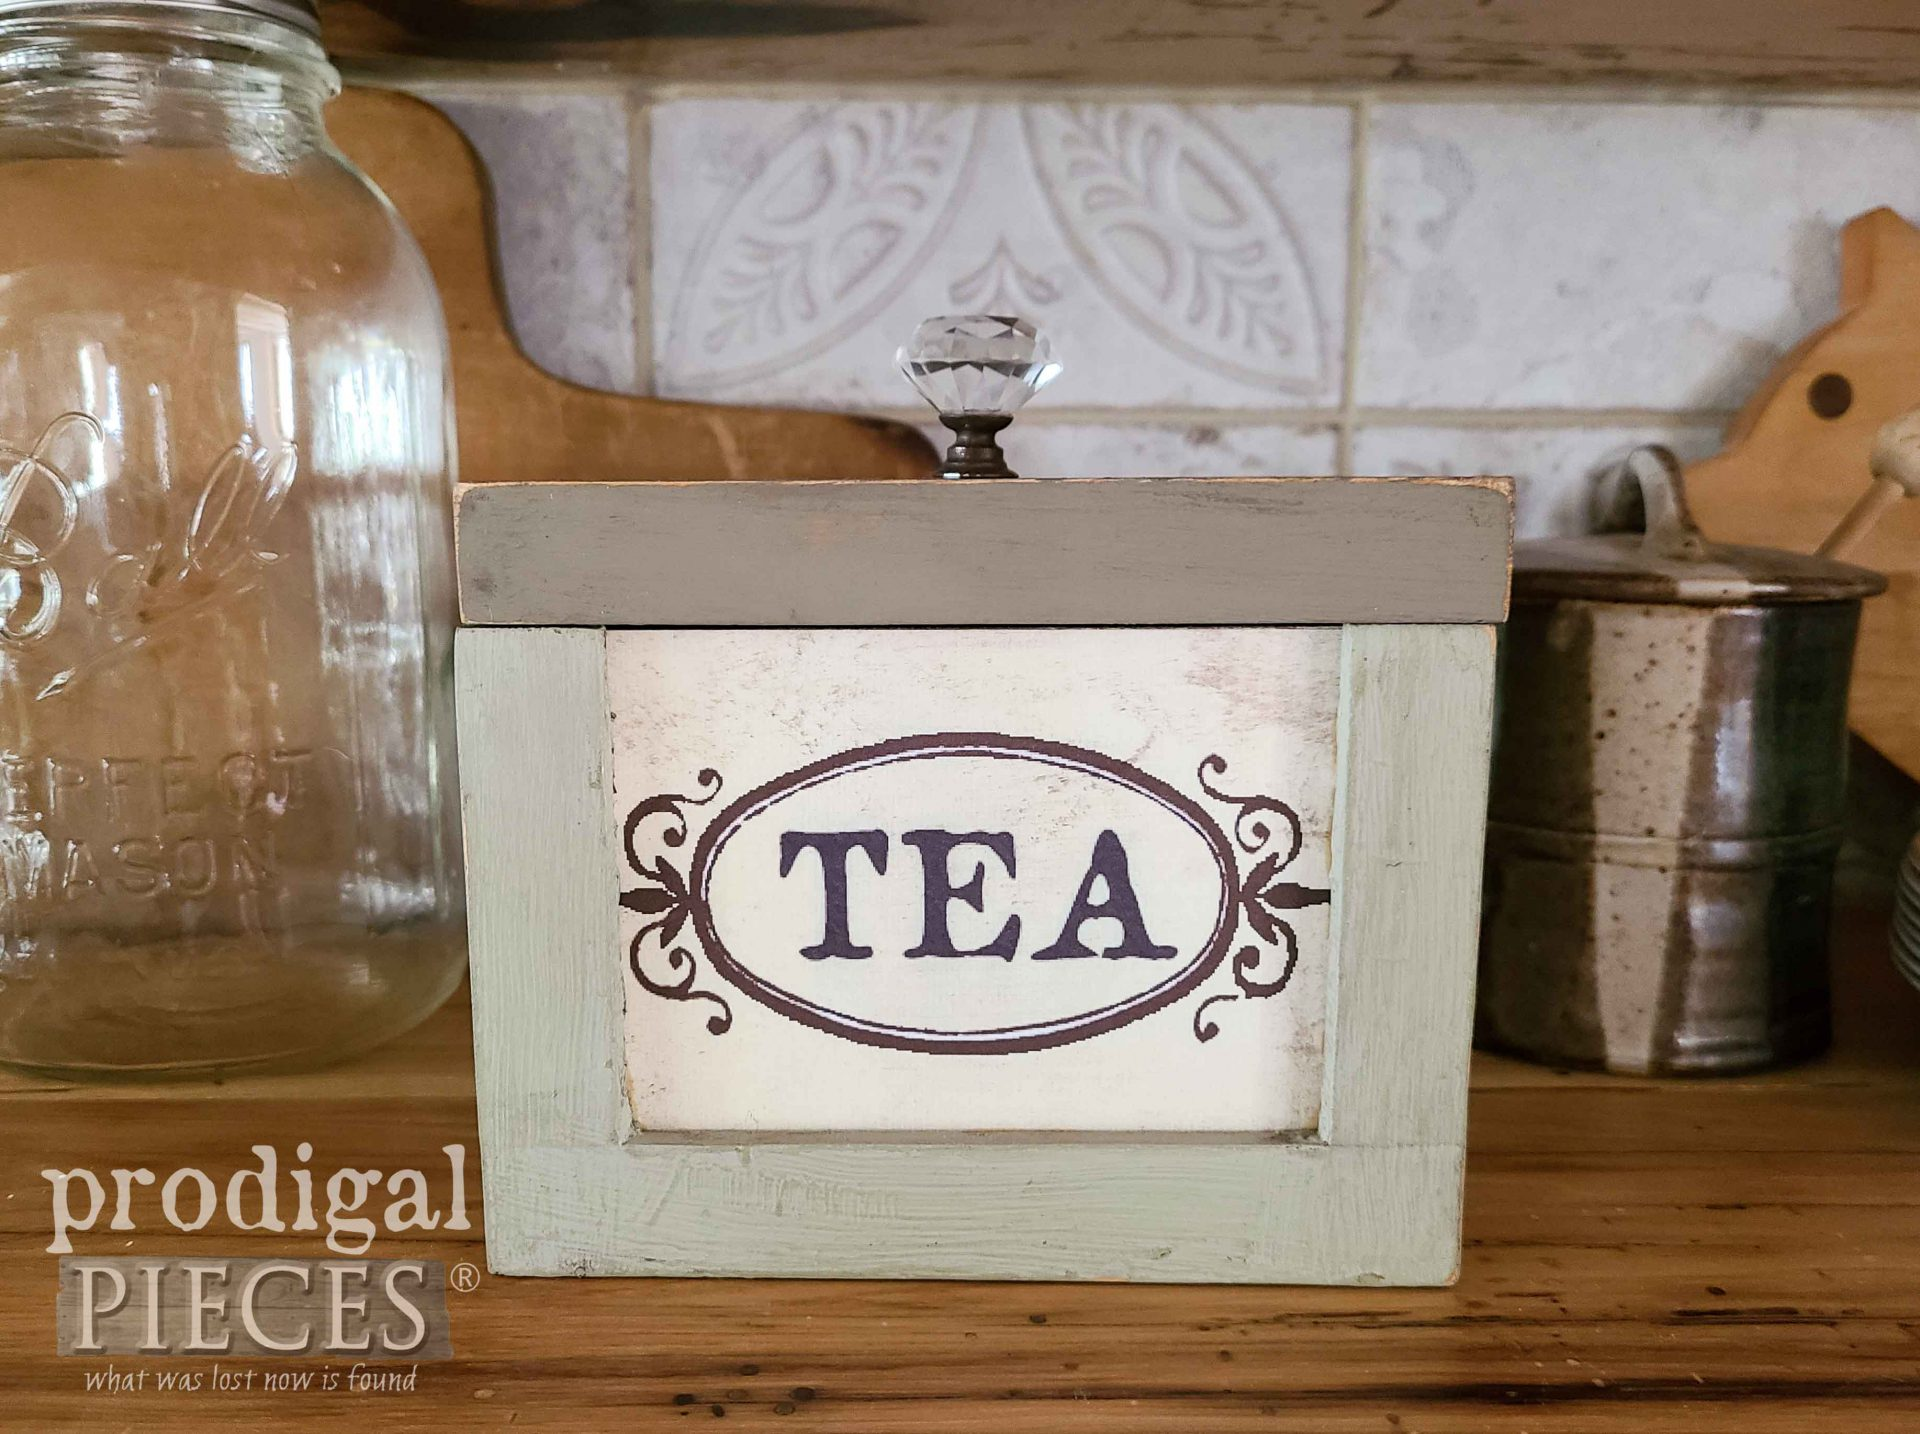 DIY Vintage Style Tea Box by Prodigal Pieces | prodigalpieces.com #prodigalpieces #farmhouse #kitchen #vintage